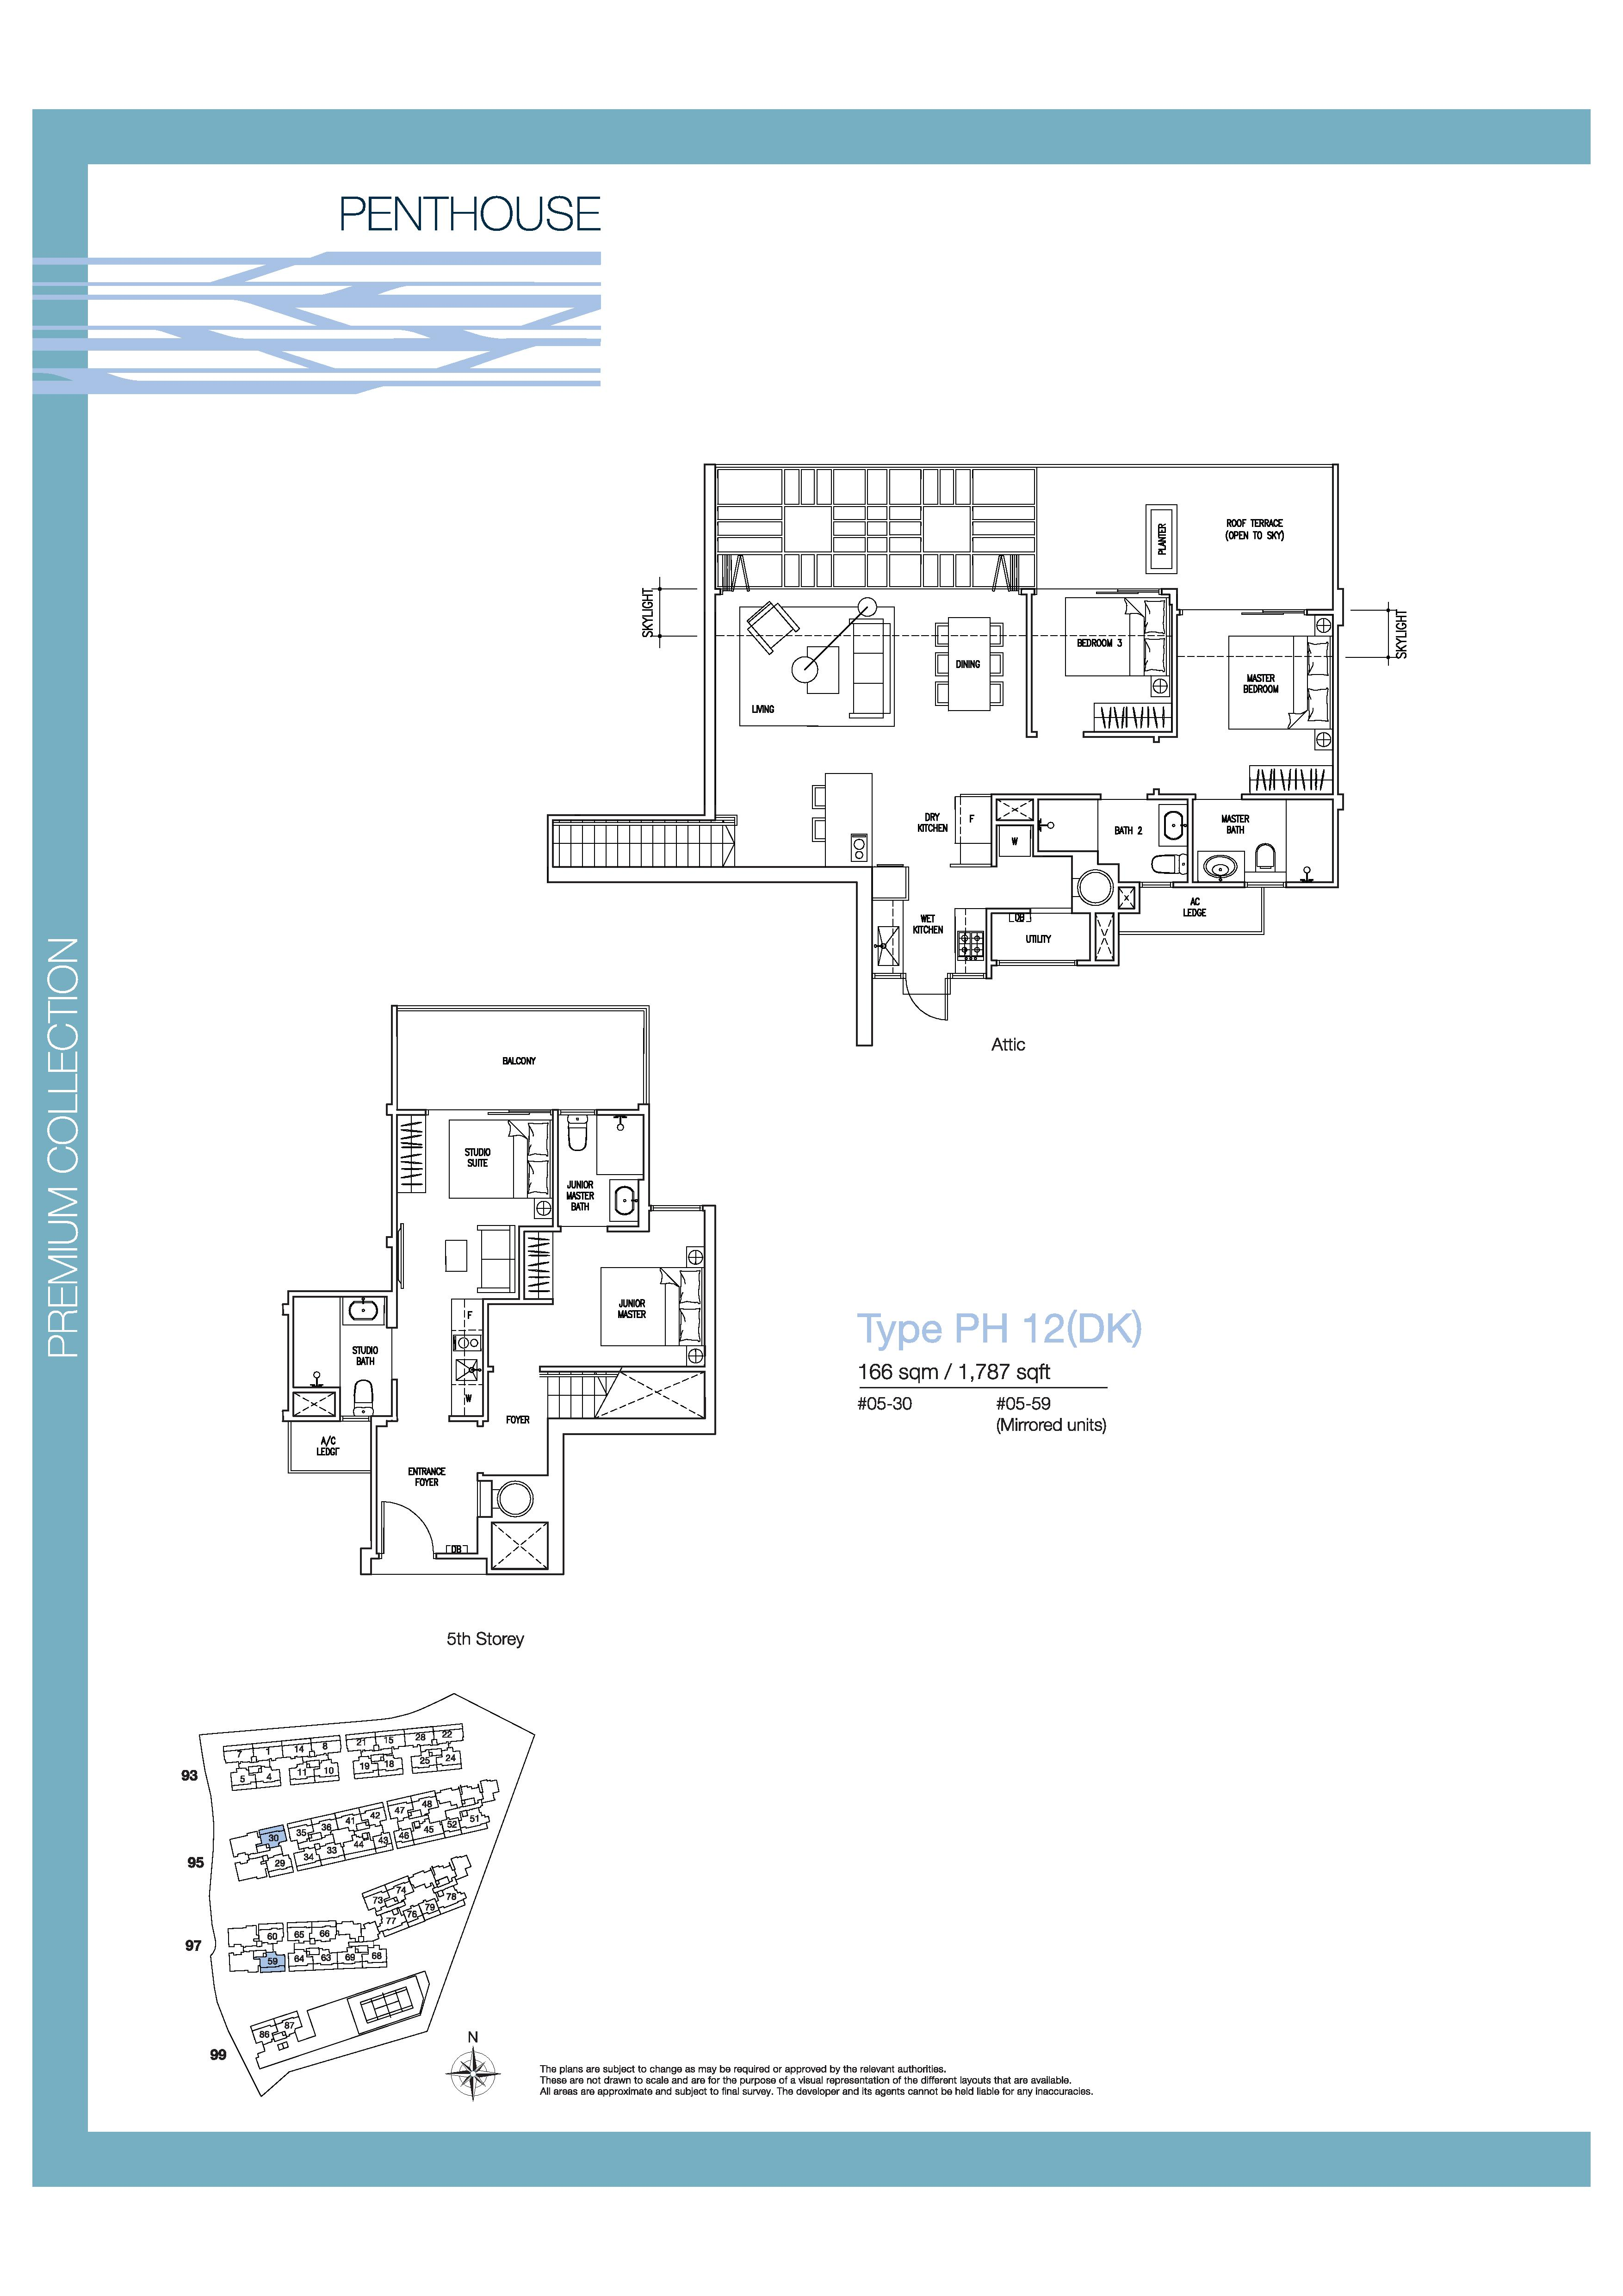 The Nautical 4 Bedroom Dual Key Penthouse Floor Plans Type PH12(DK)